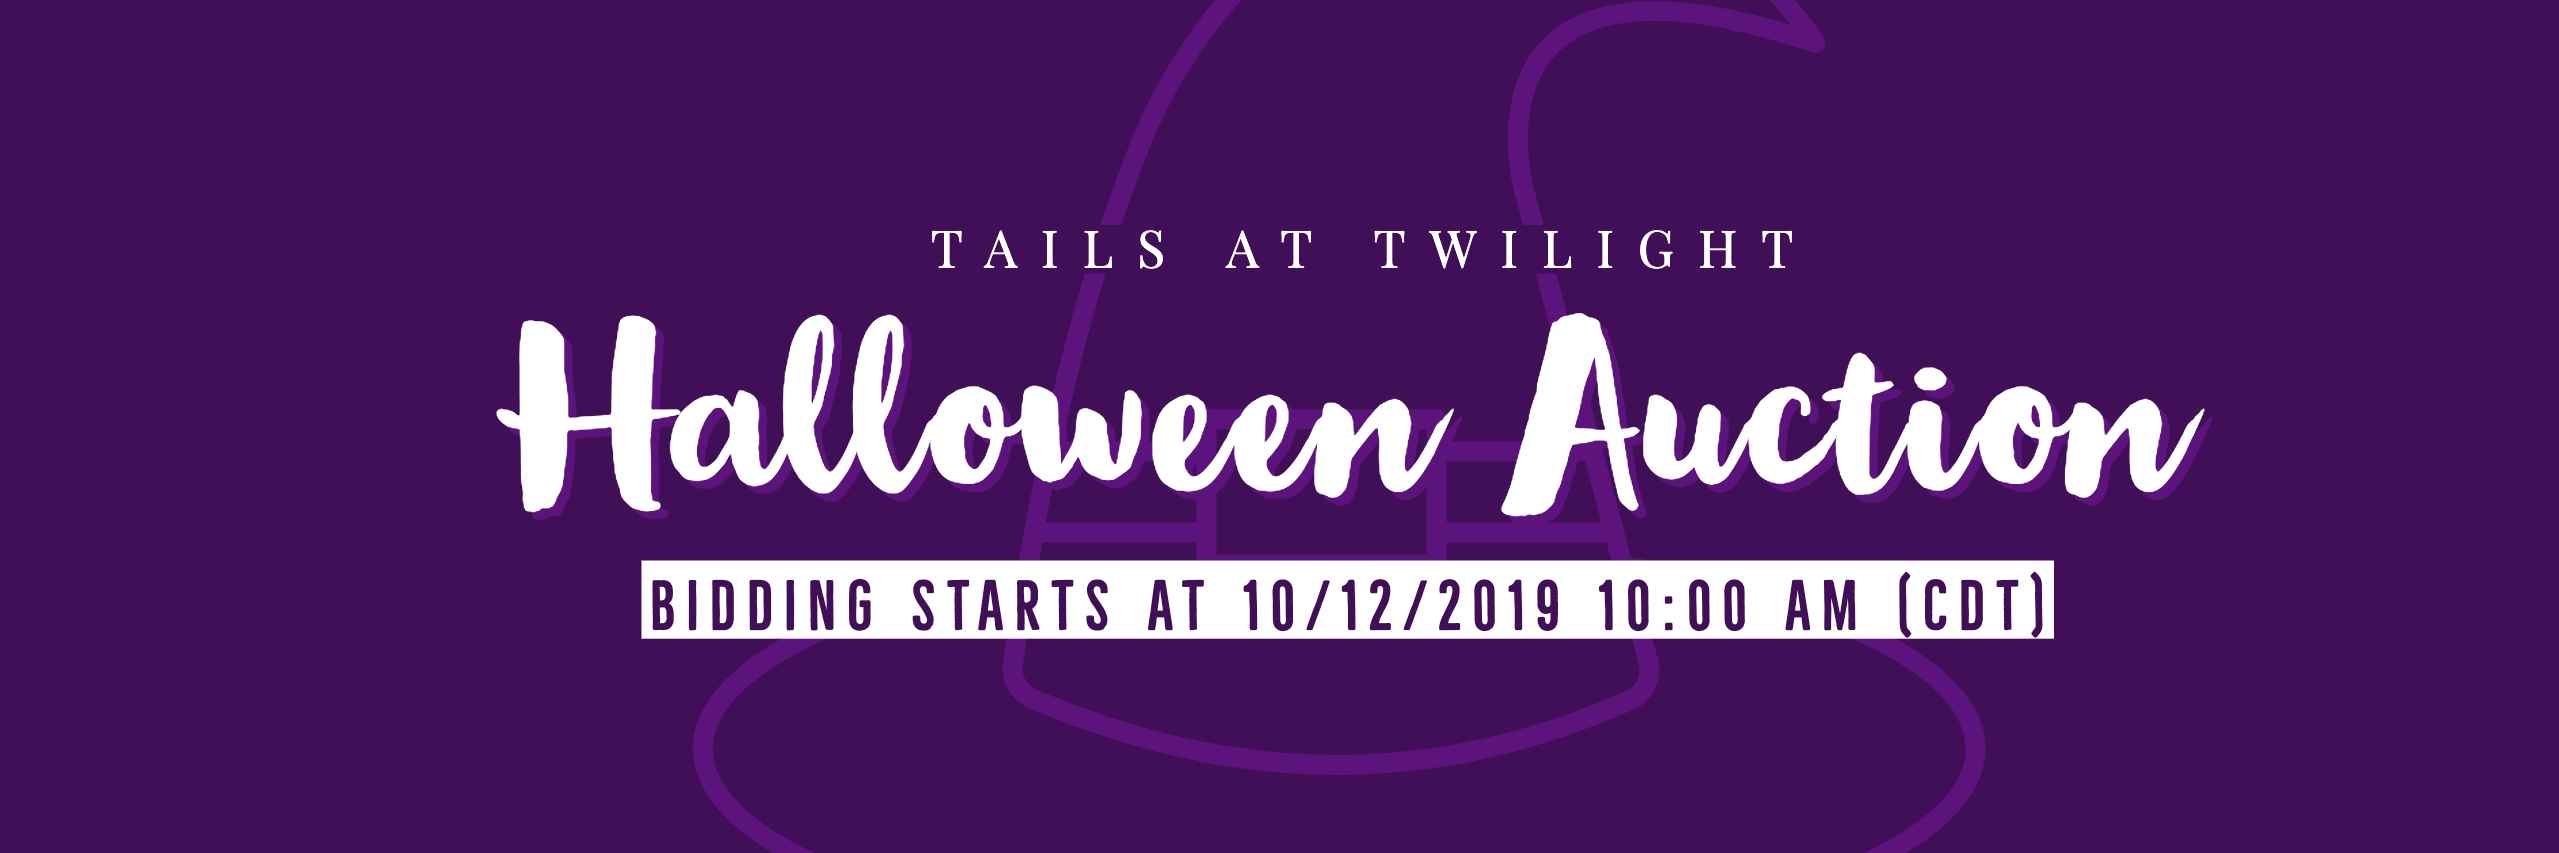 Tails at Twilight Halloween Auction